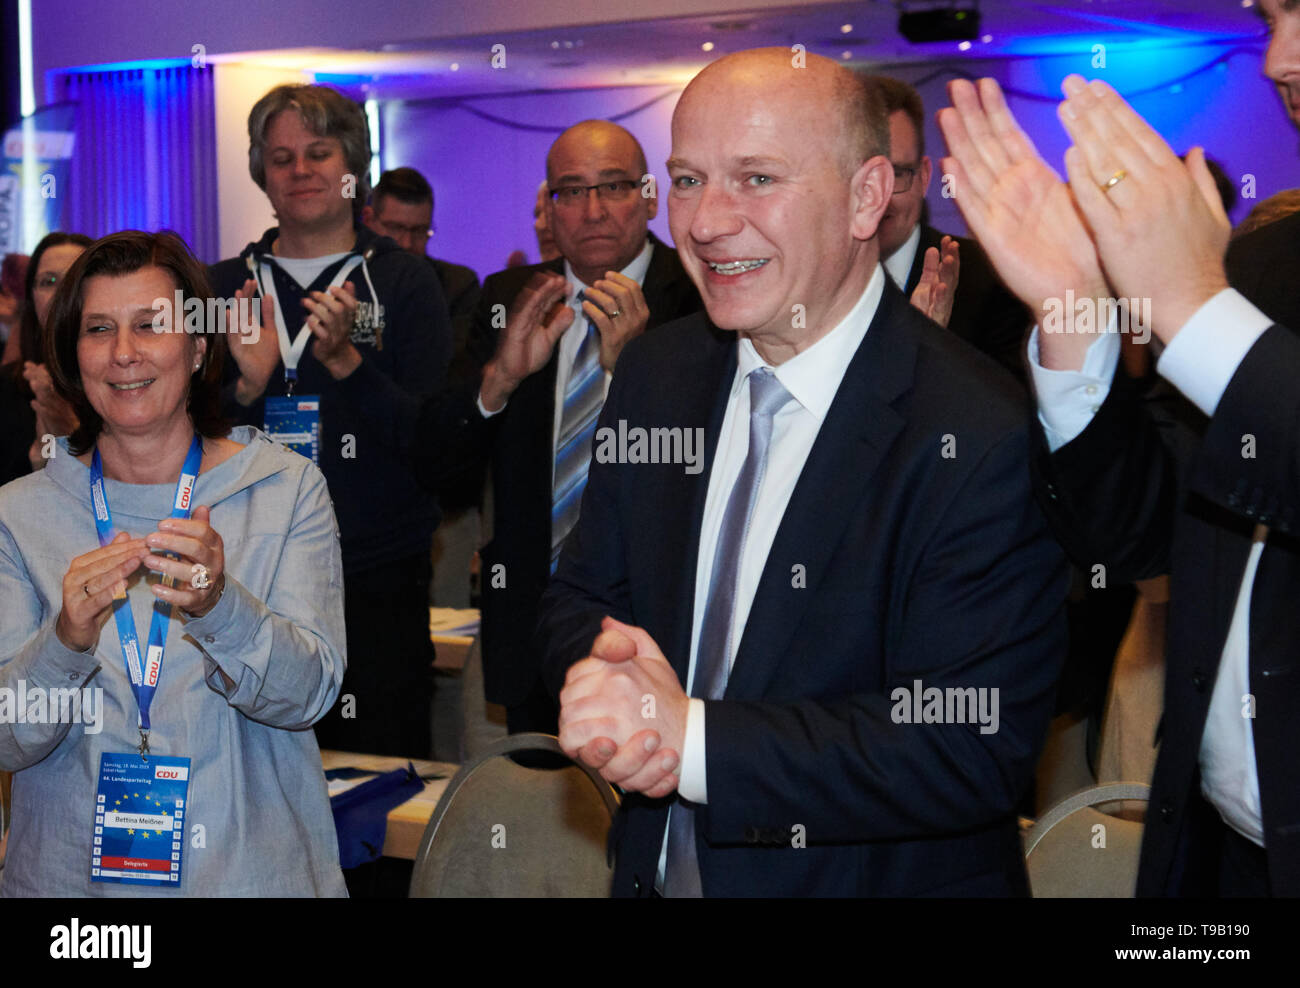 Berlin, Germany. 18th May, 2019. Kai Wegner (r), new party leader of the Berlin CDU, is happy about the election. Credit: Annette Riedl/dpa/Alamy Live News Stock Photo